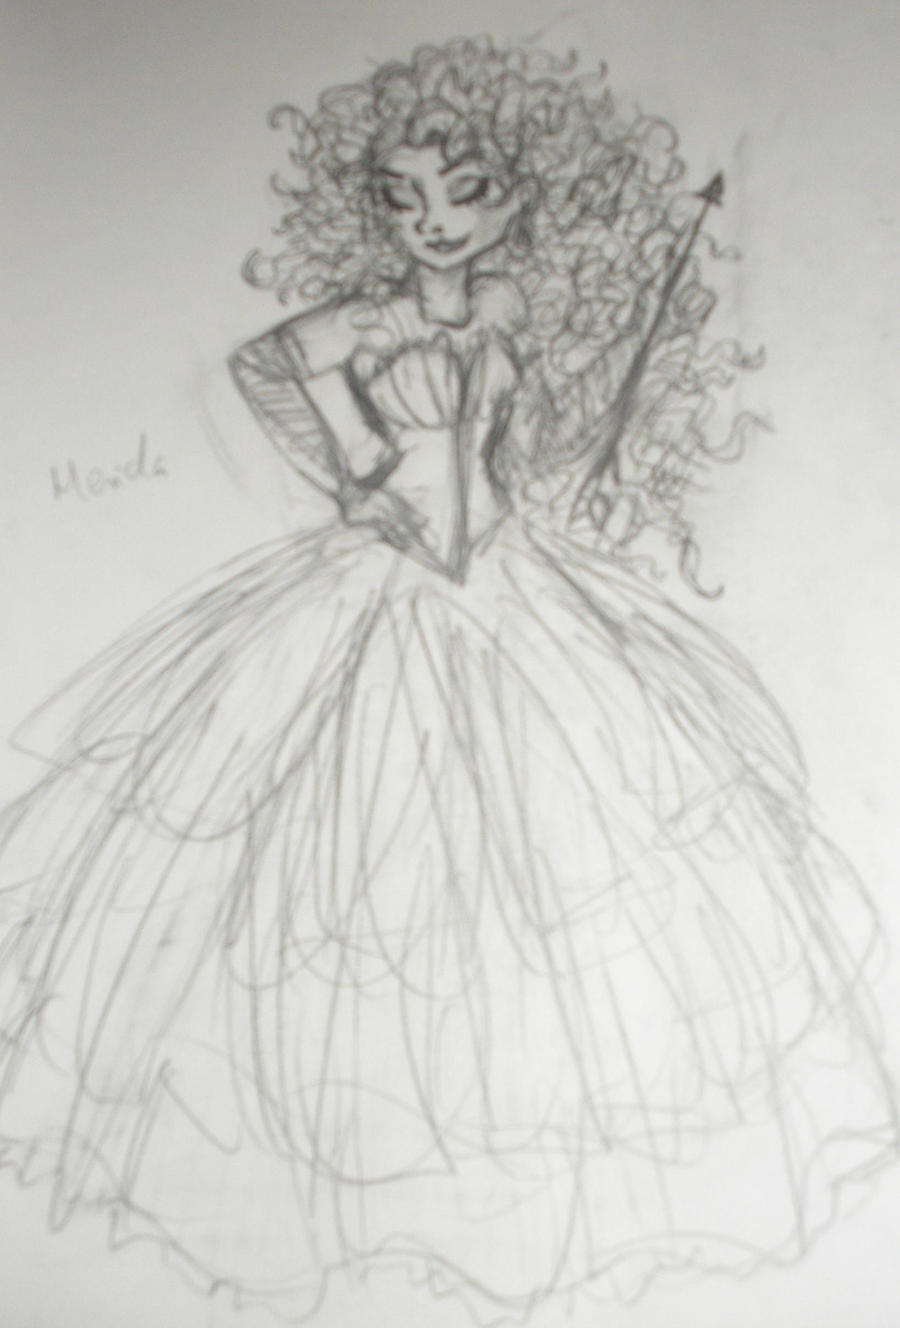 Designer Merida-unfinished by sophiesmile